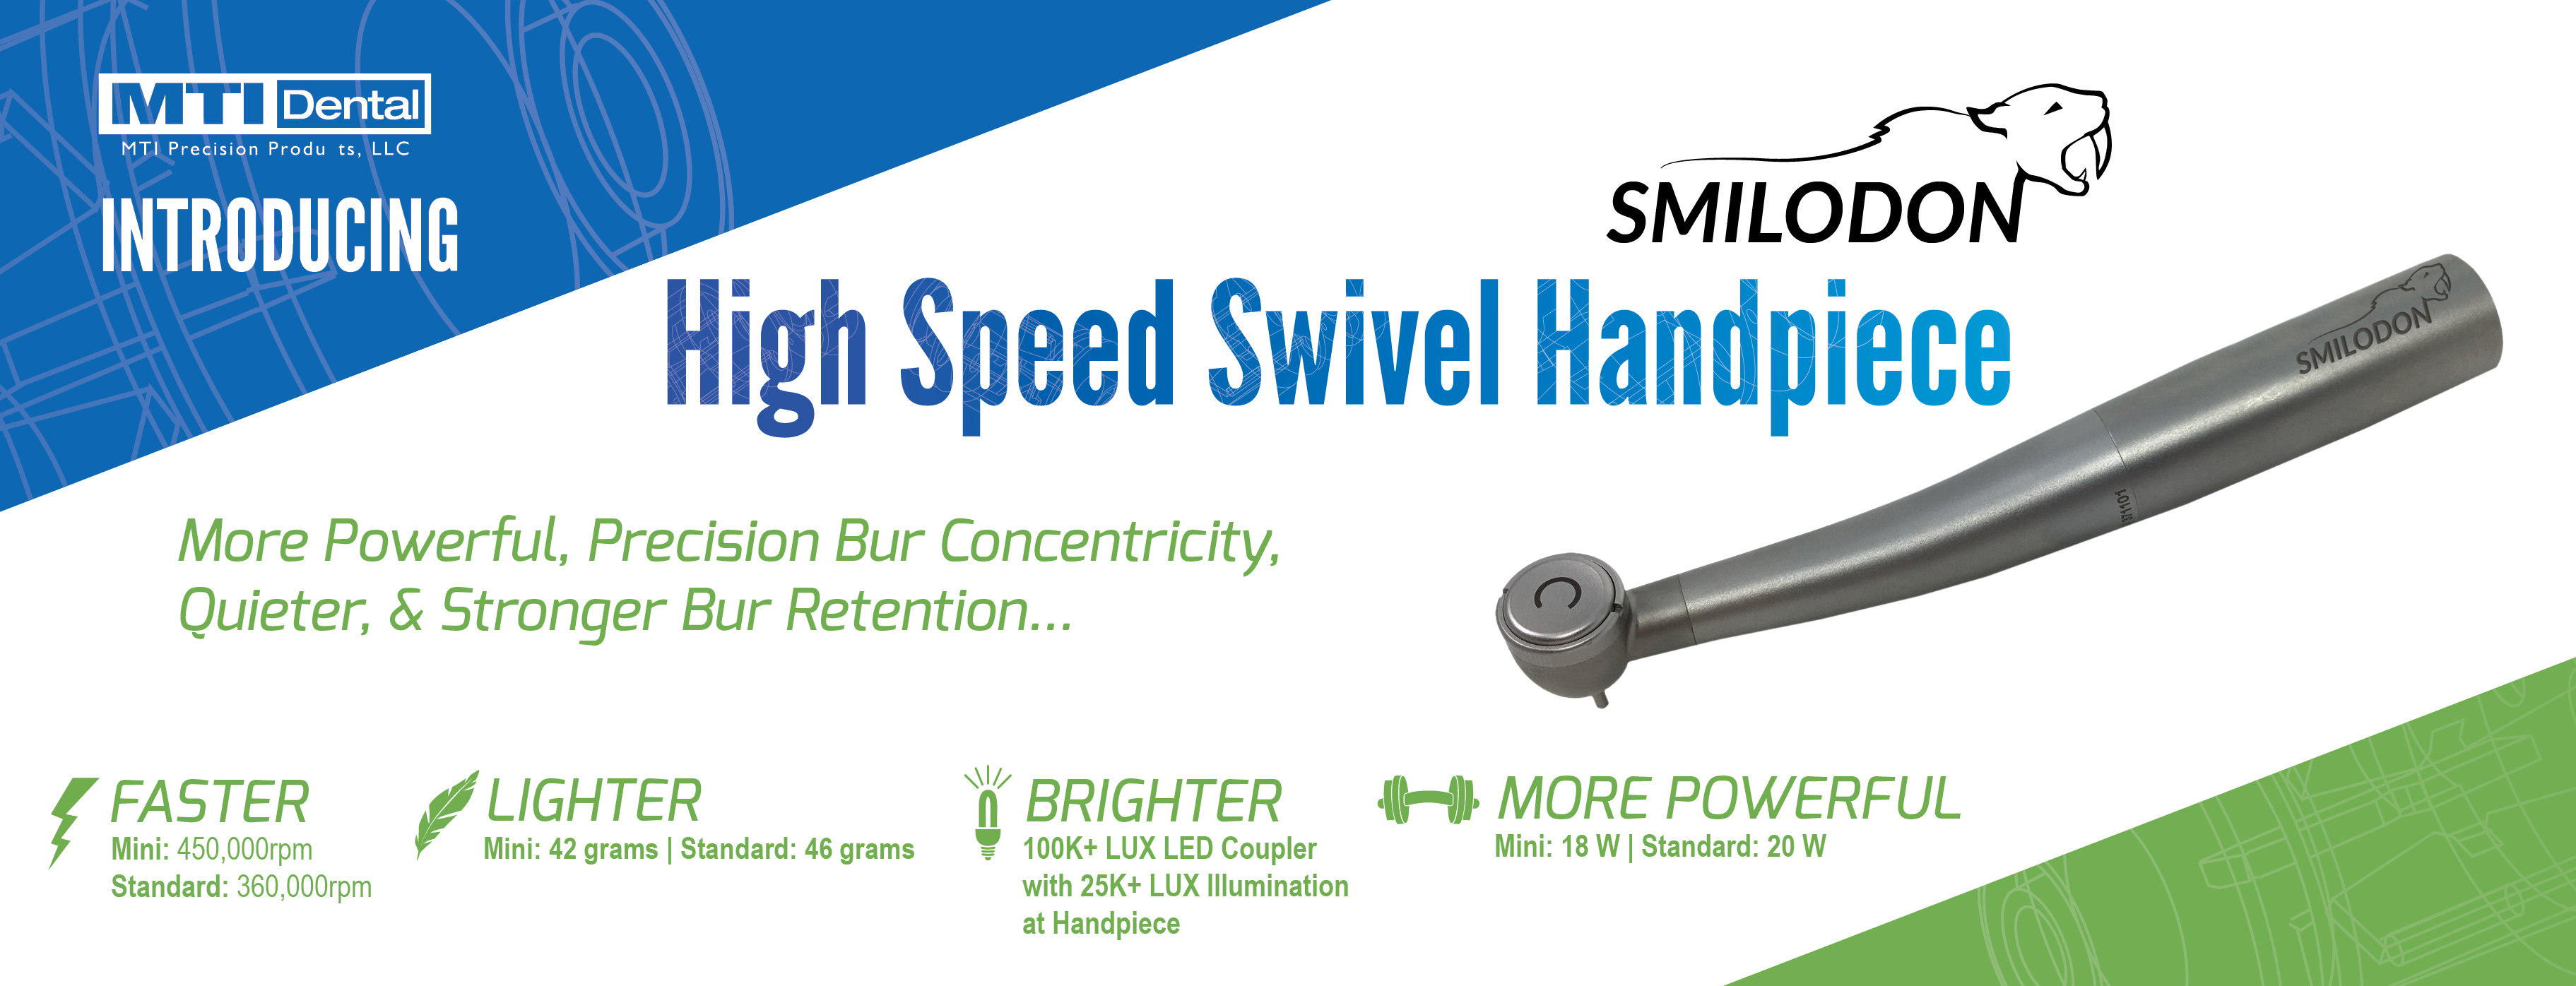 High Speed Dental Handpieces by MTI Dental. Featuring the Brand New SMILODON High Speed Dental Handpiece.